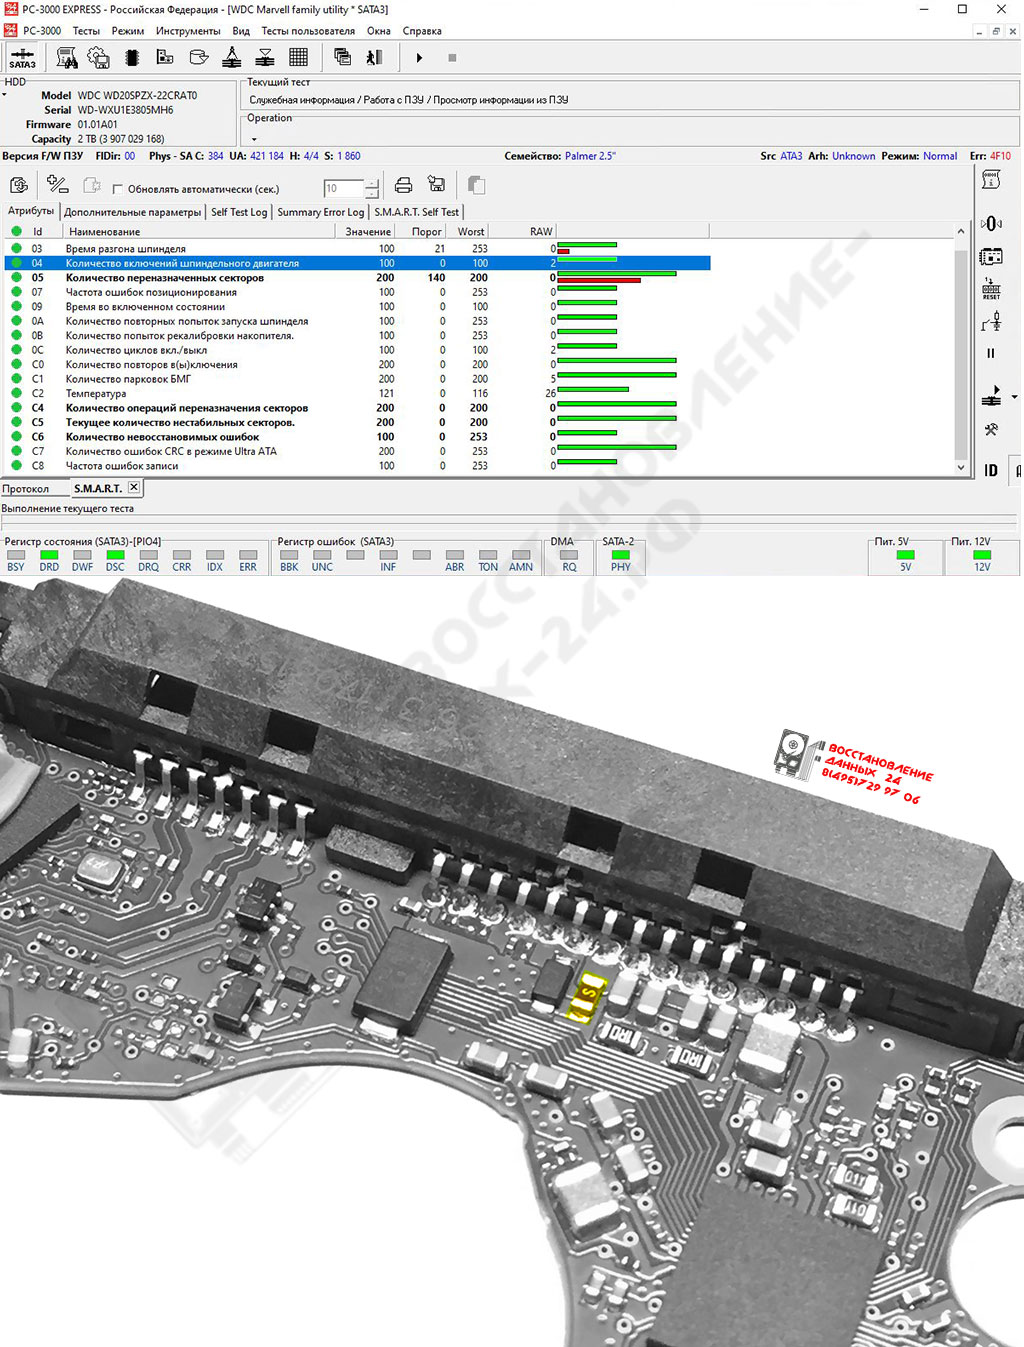 WD20SPZX-22CRAT0_SATA_ONBOARD_SMD-FUSE_PC3000